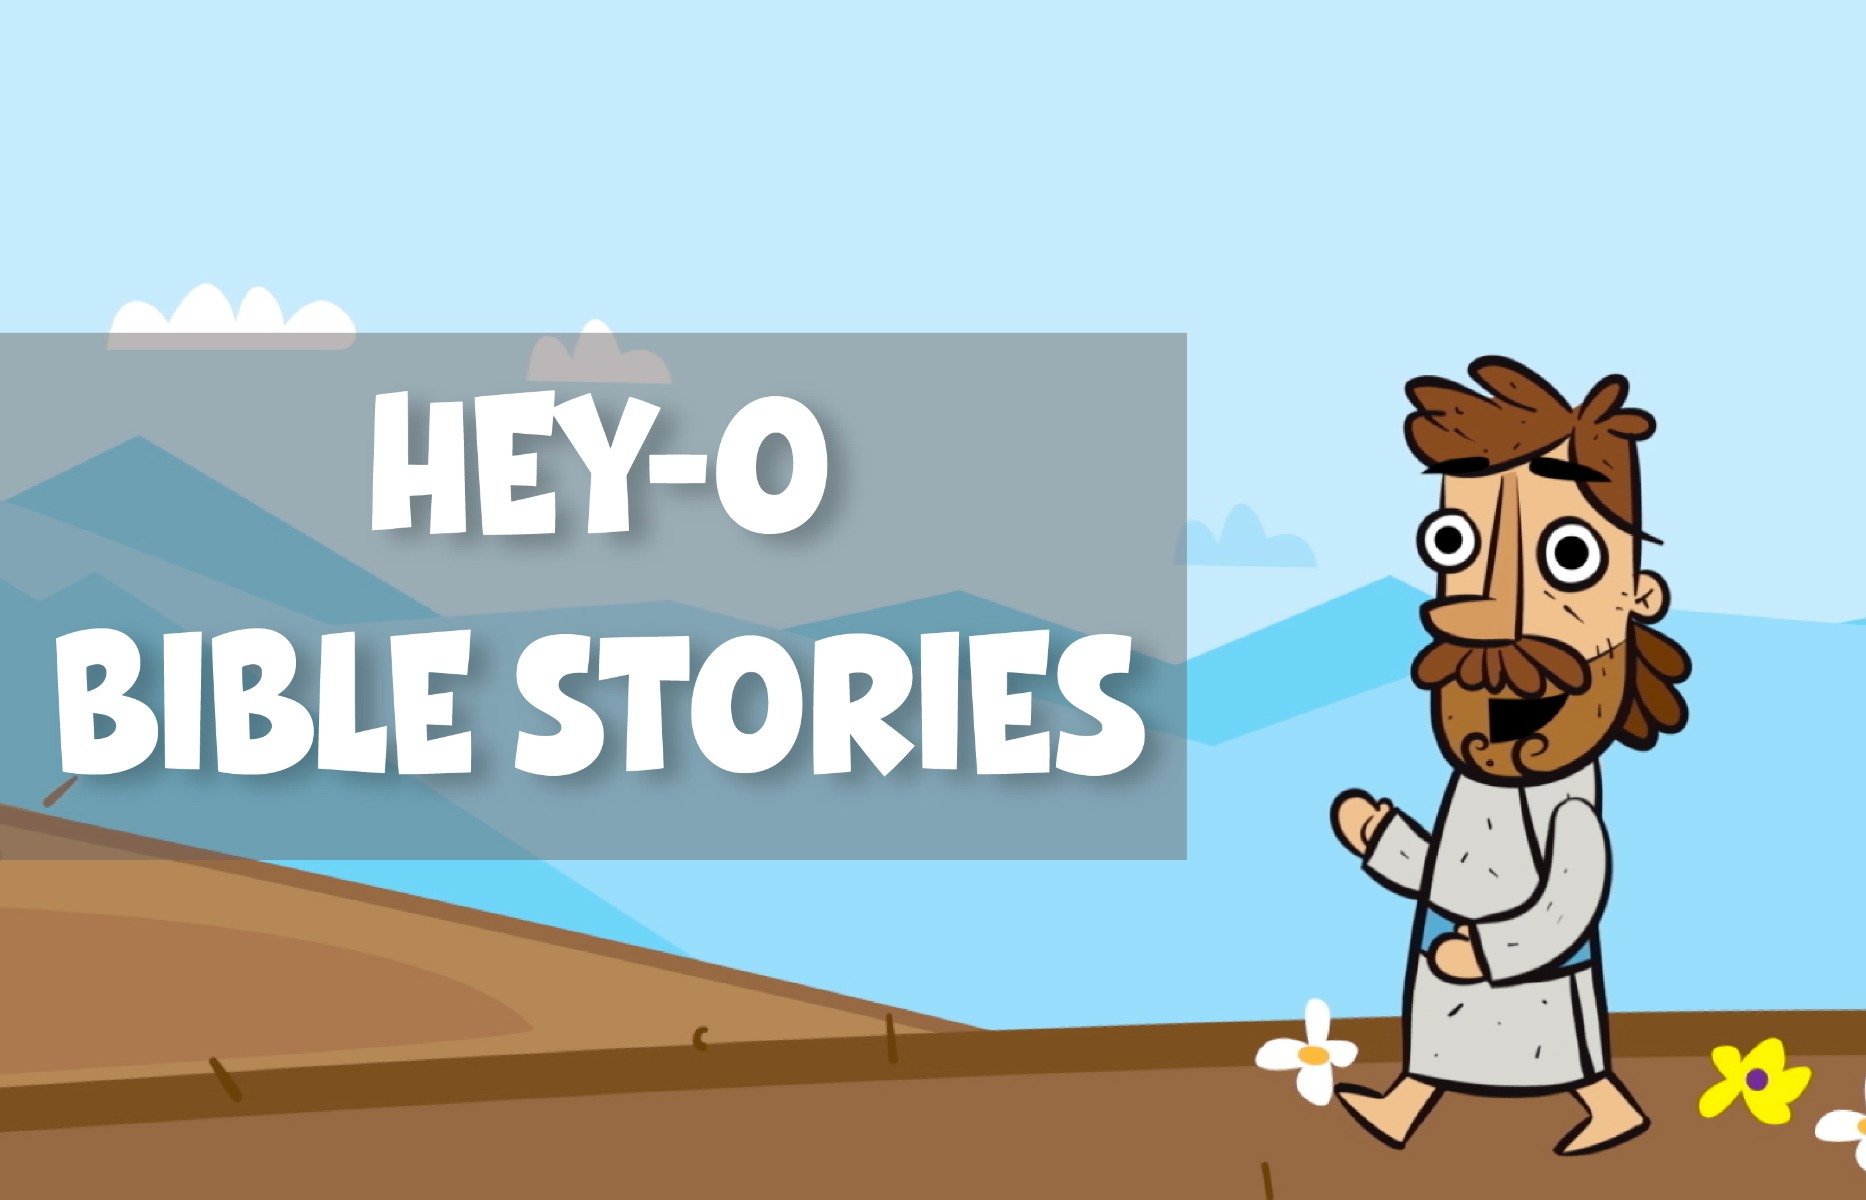 Hey-O Bible Stories